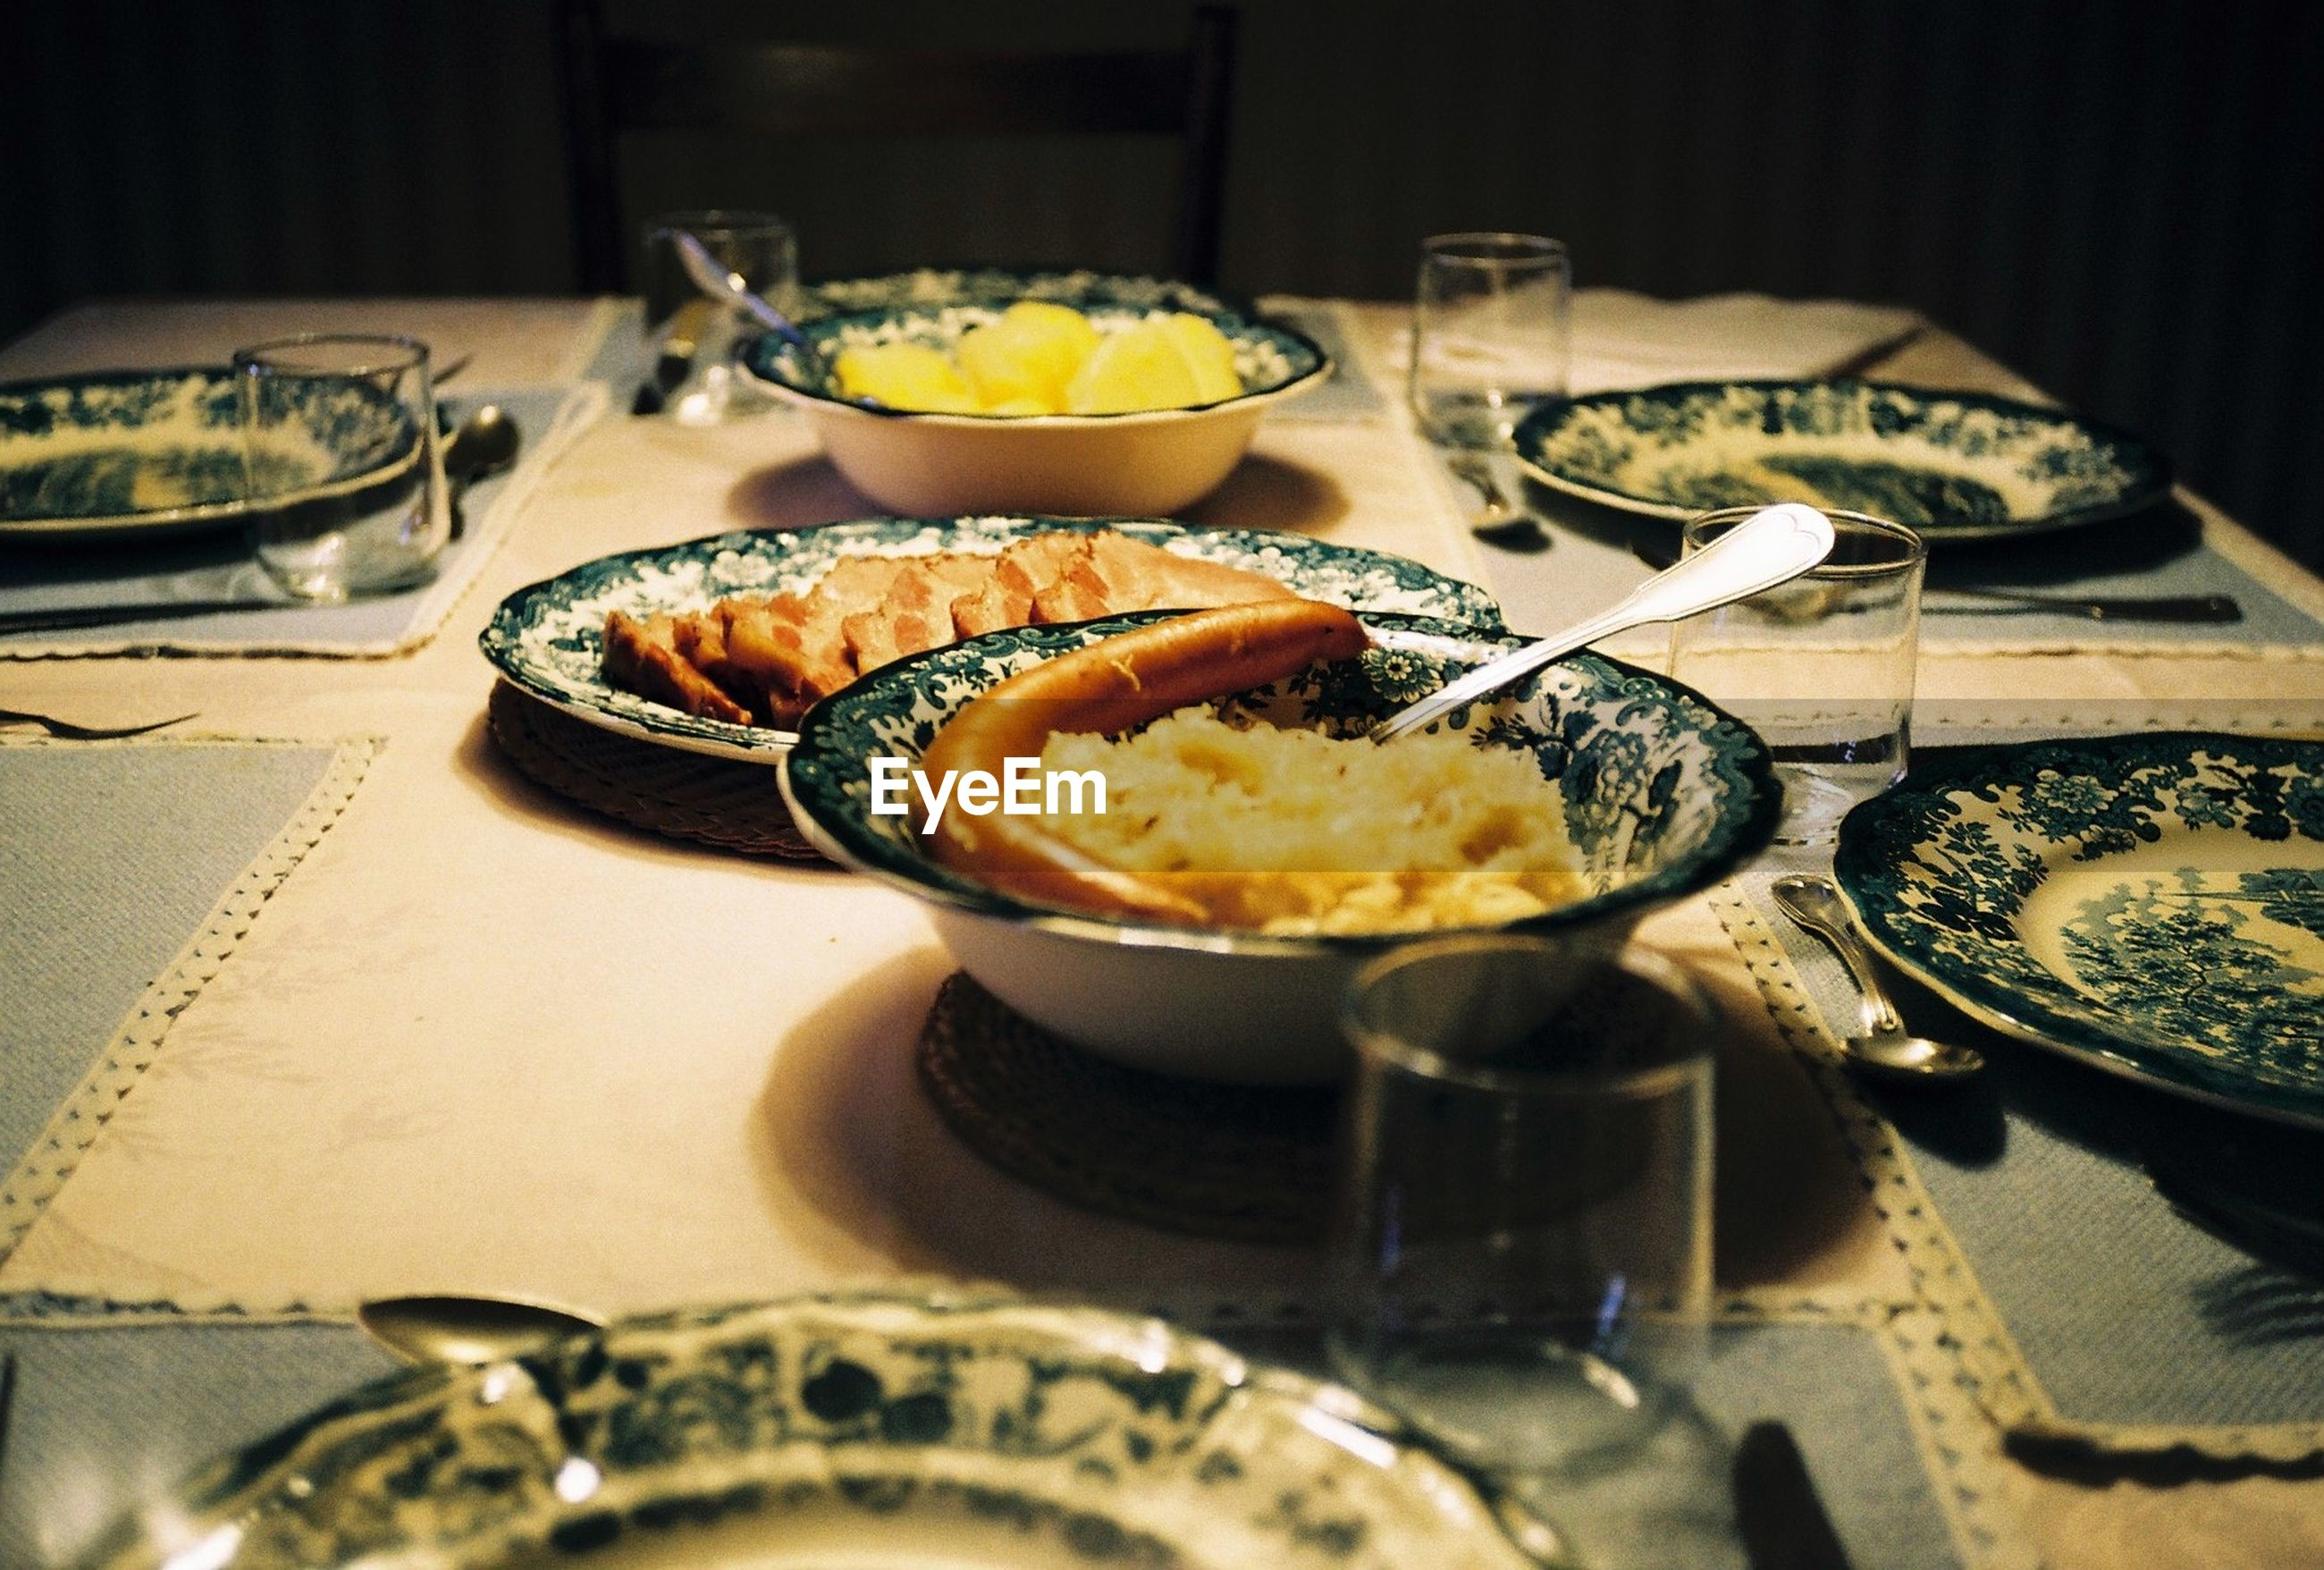 Kassler with sausages served on table